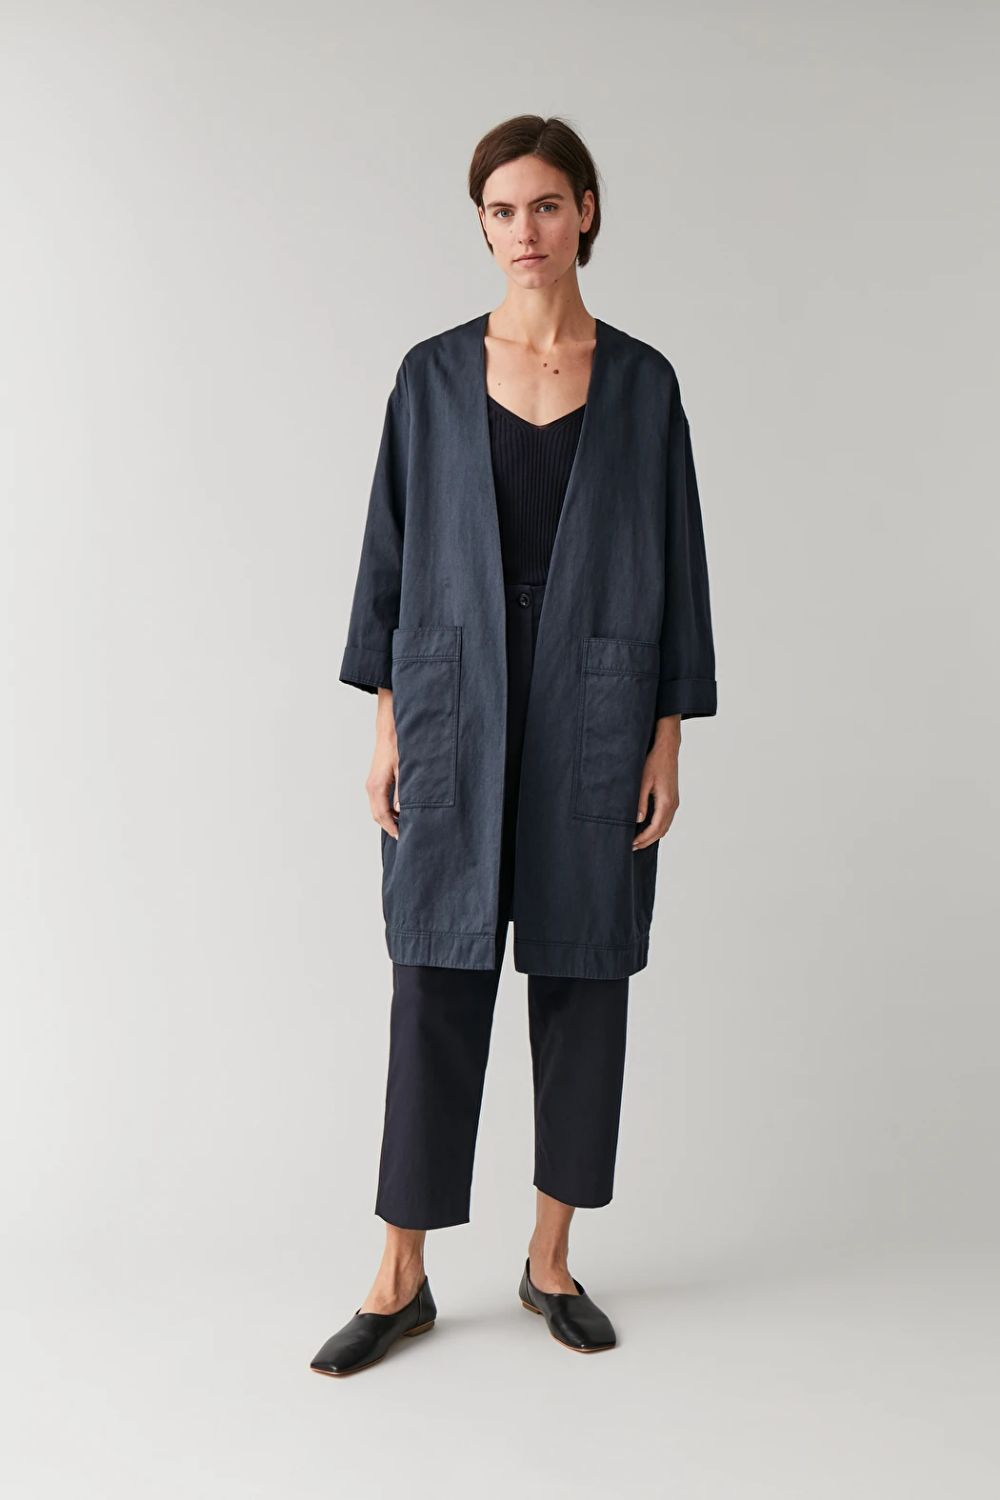 COTTON-LINEN JACKET WITH DRAPED FRONT - blue - Coats and Jackets - COS DE